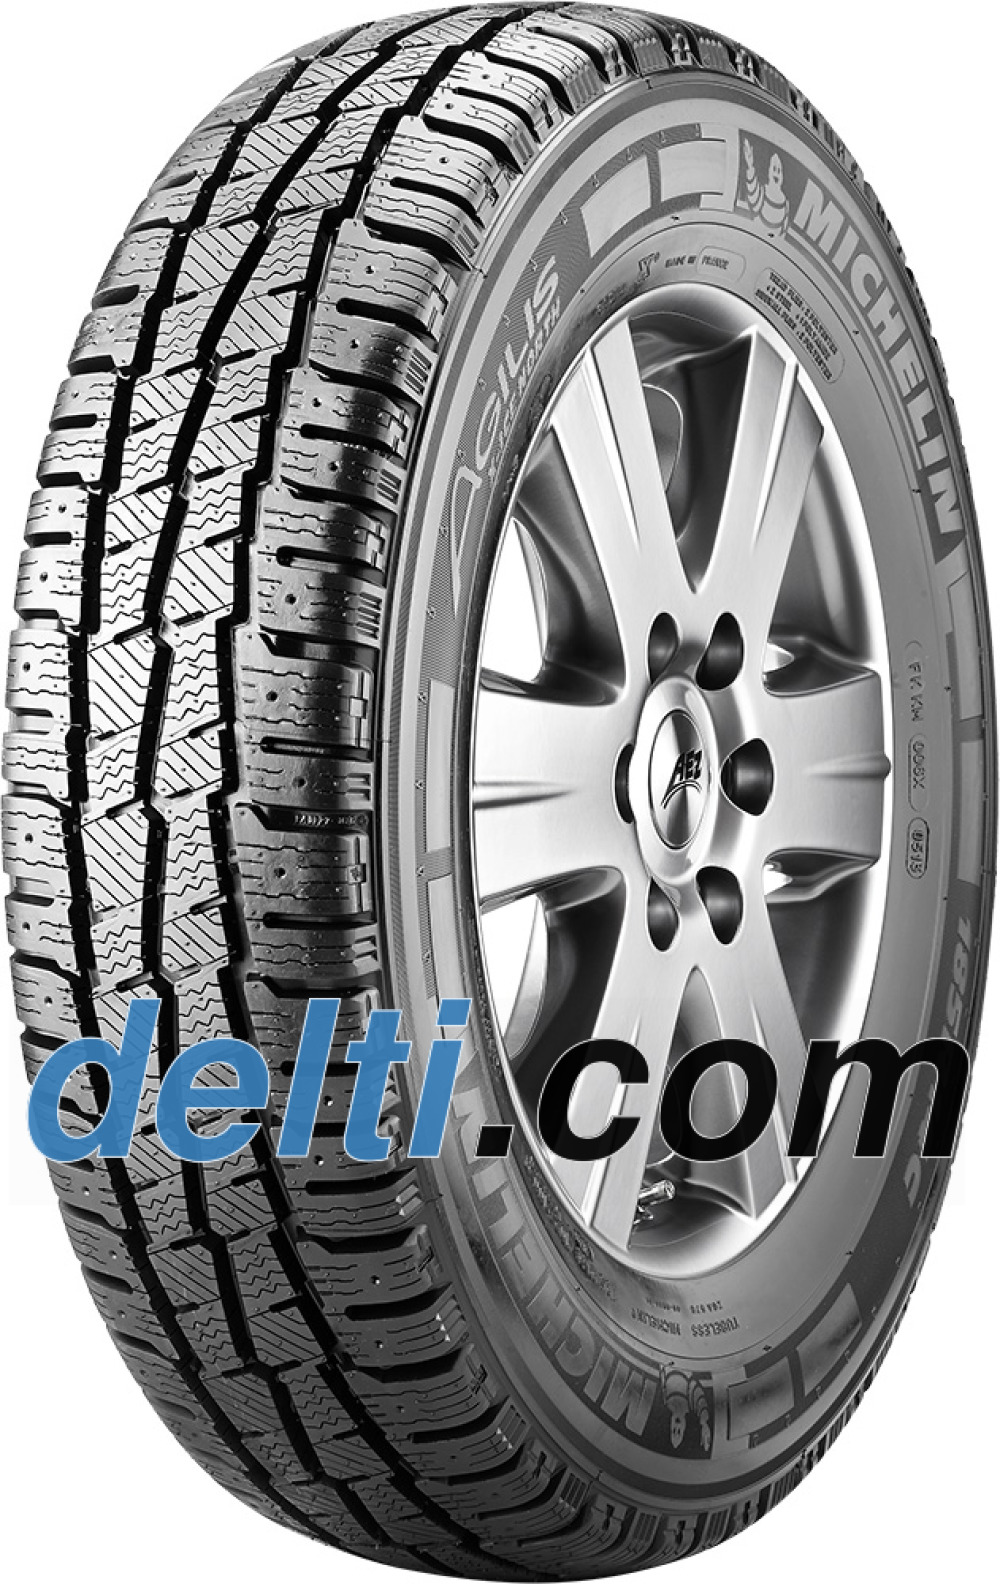 Michelin Agilis X-Ice North ( 235/65 R16C 115/113R , med pigger )